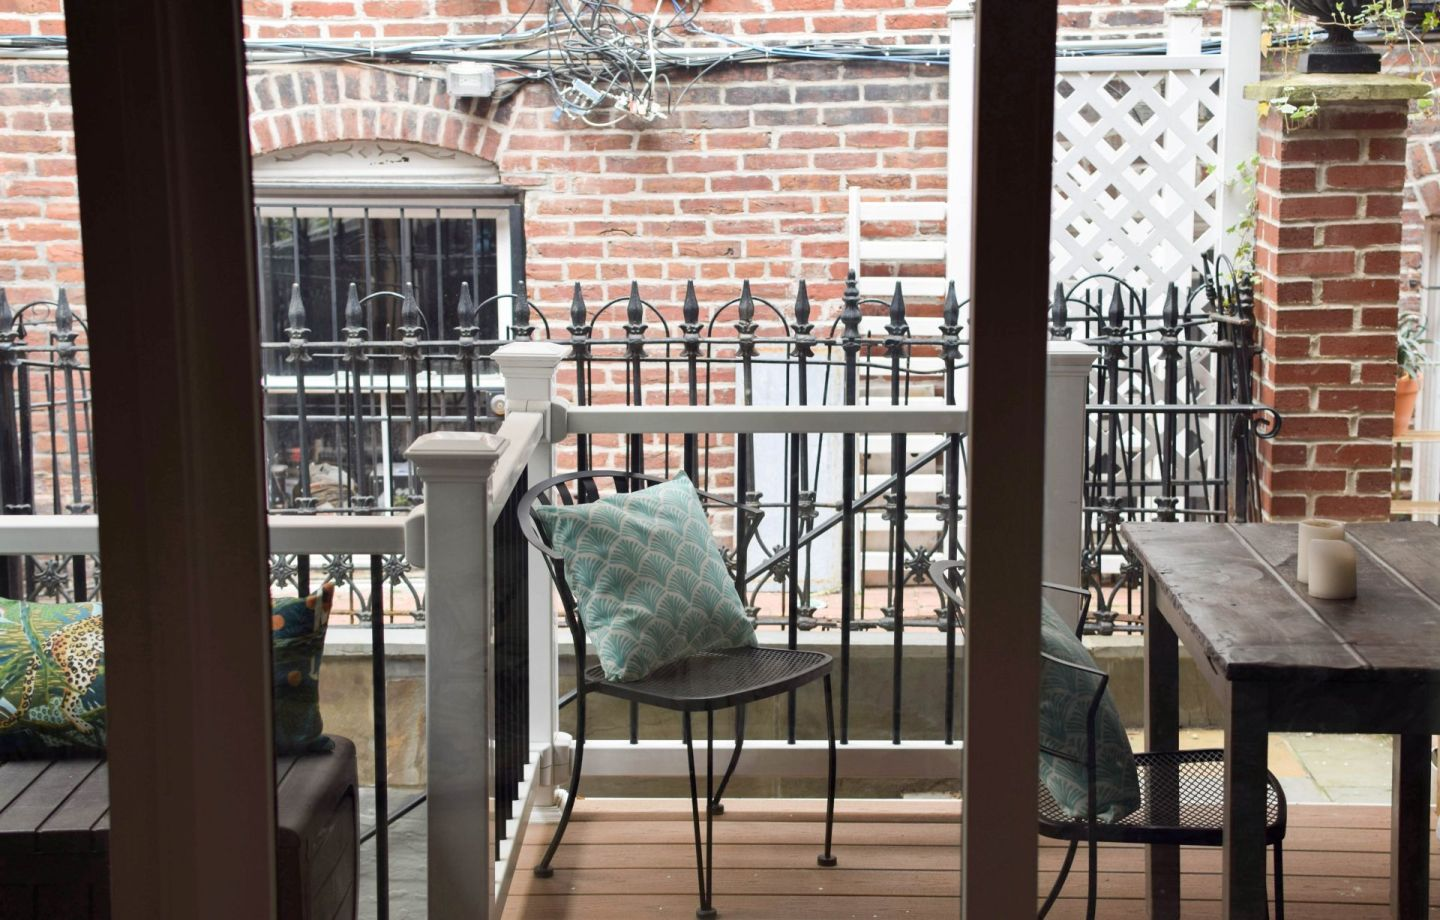 creating an outdoor room - redecorating our outdoor space - target outdoor finds - create an outdoor room